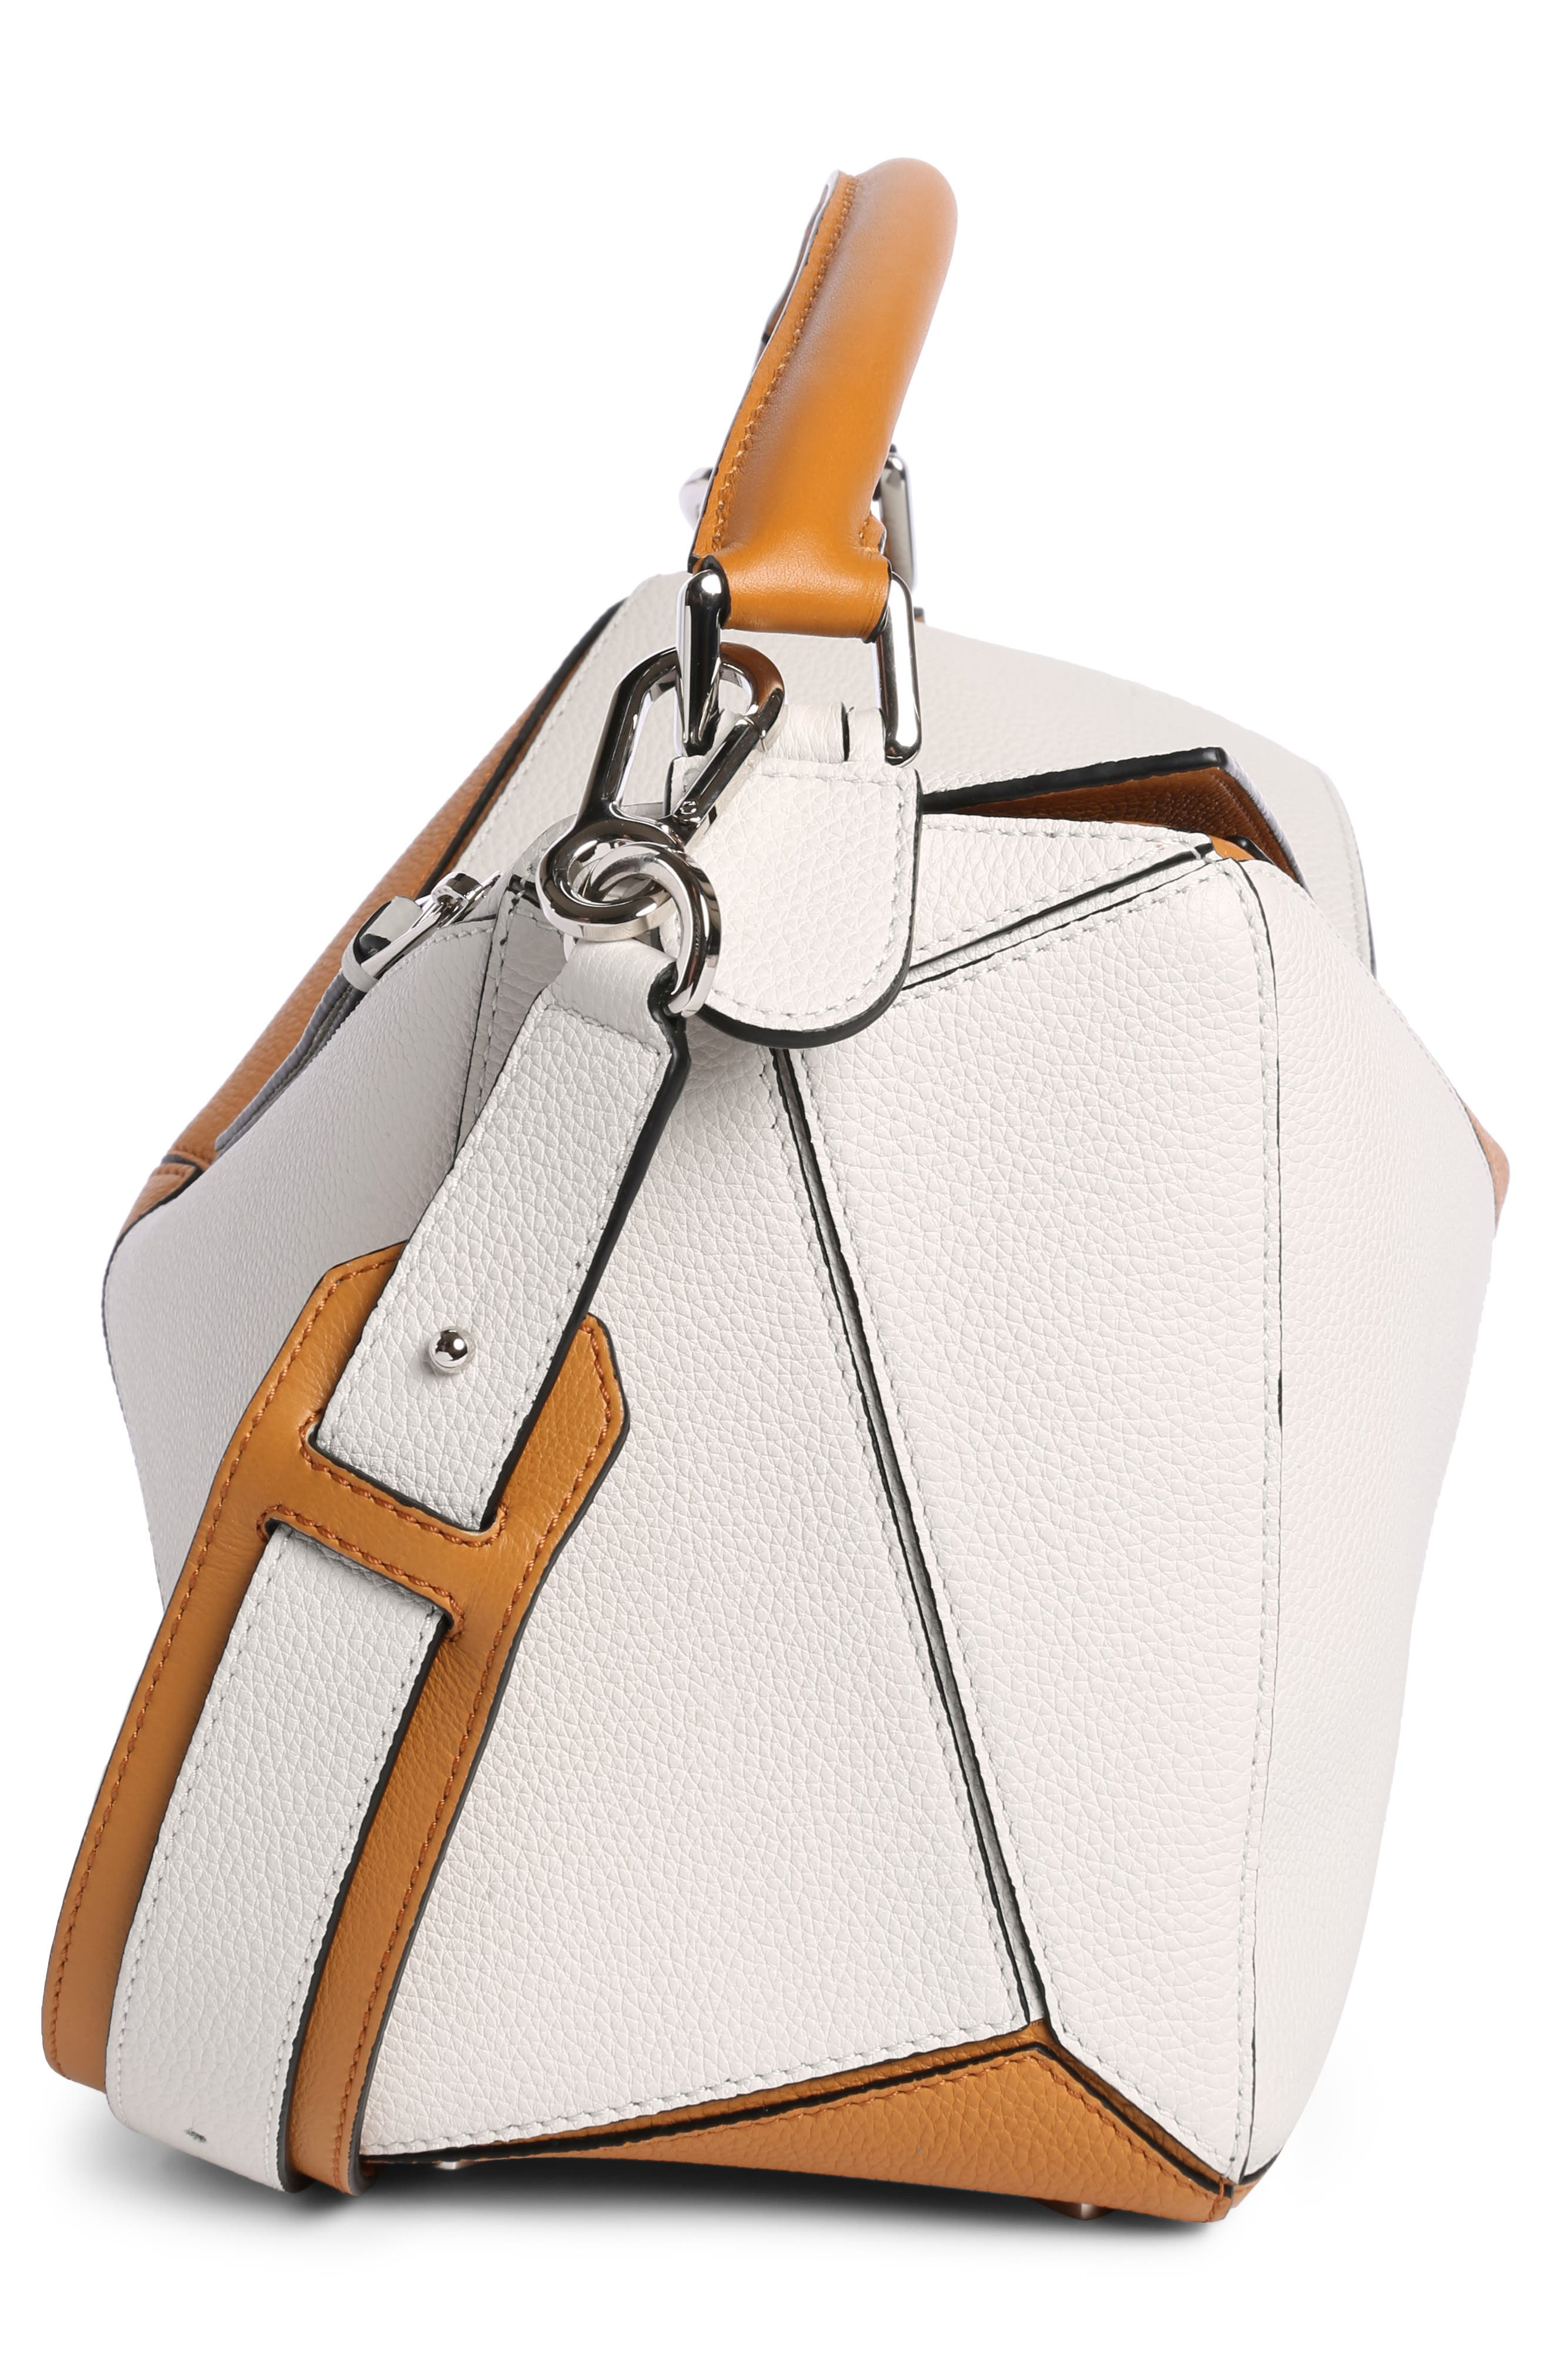 Puzzle Colorblock Calfskin Leather Bag,                             Alternate thumbnail 3, color,                             Soft White/ Amber